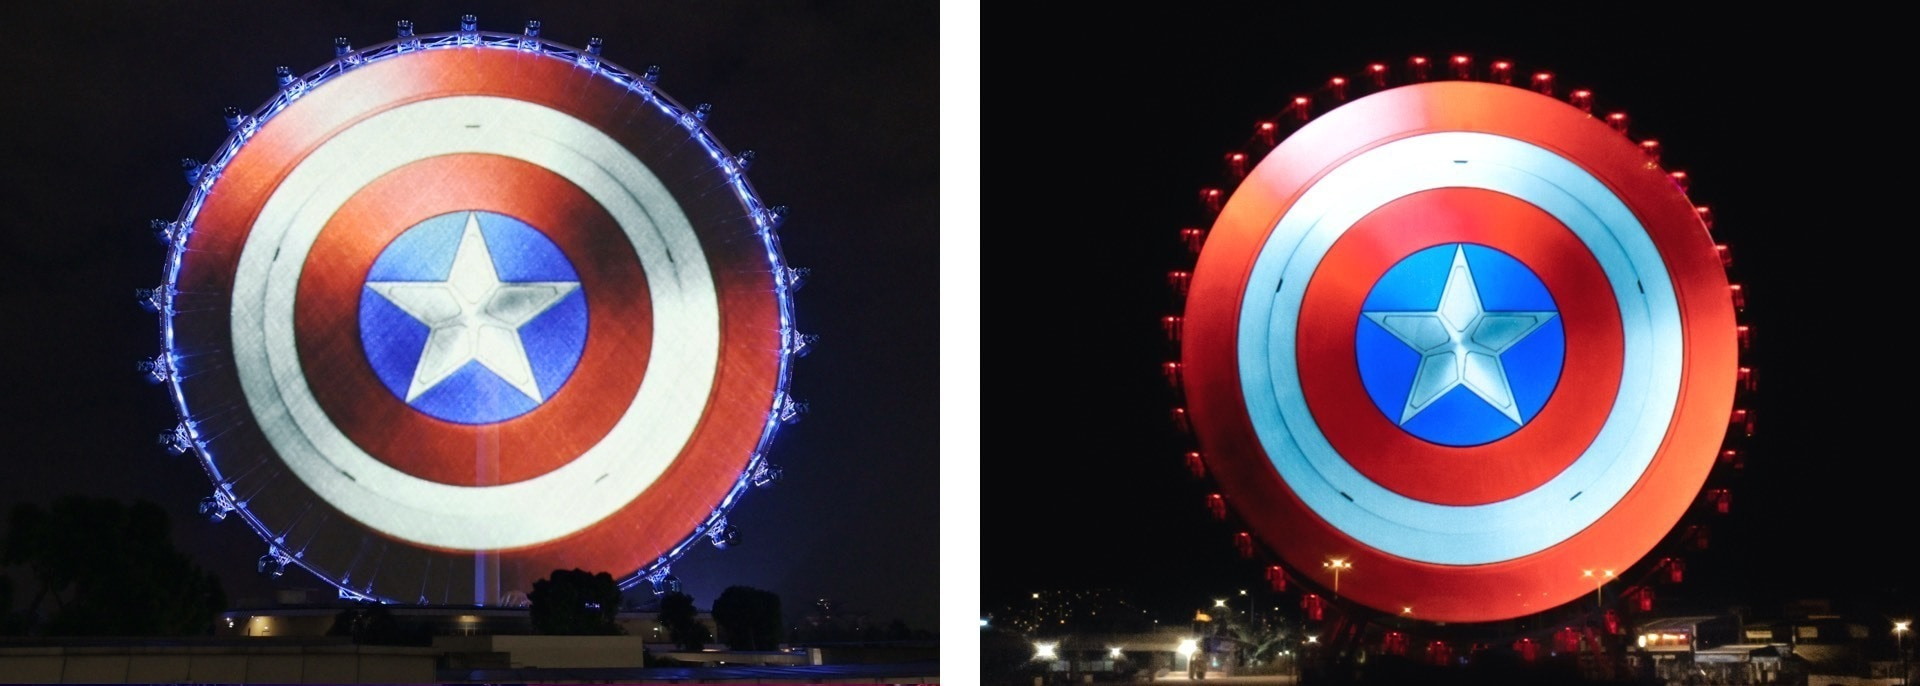 A projection mapping of the shield onto the Singapore Flyer, Singapore and La Grande Roue de Marseille, Marseille, France